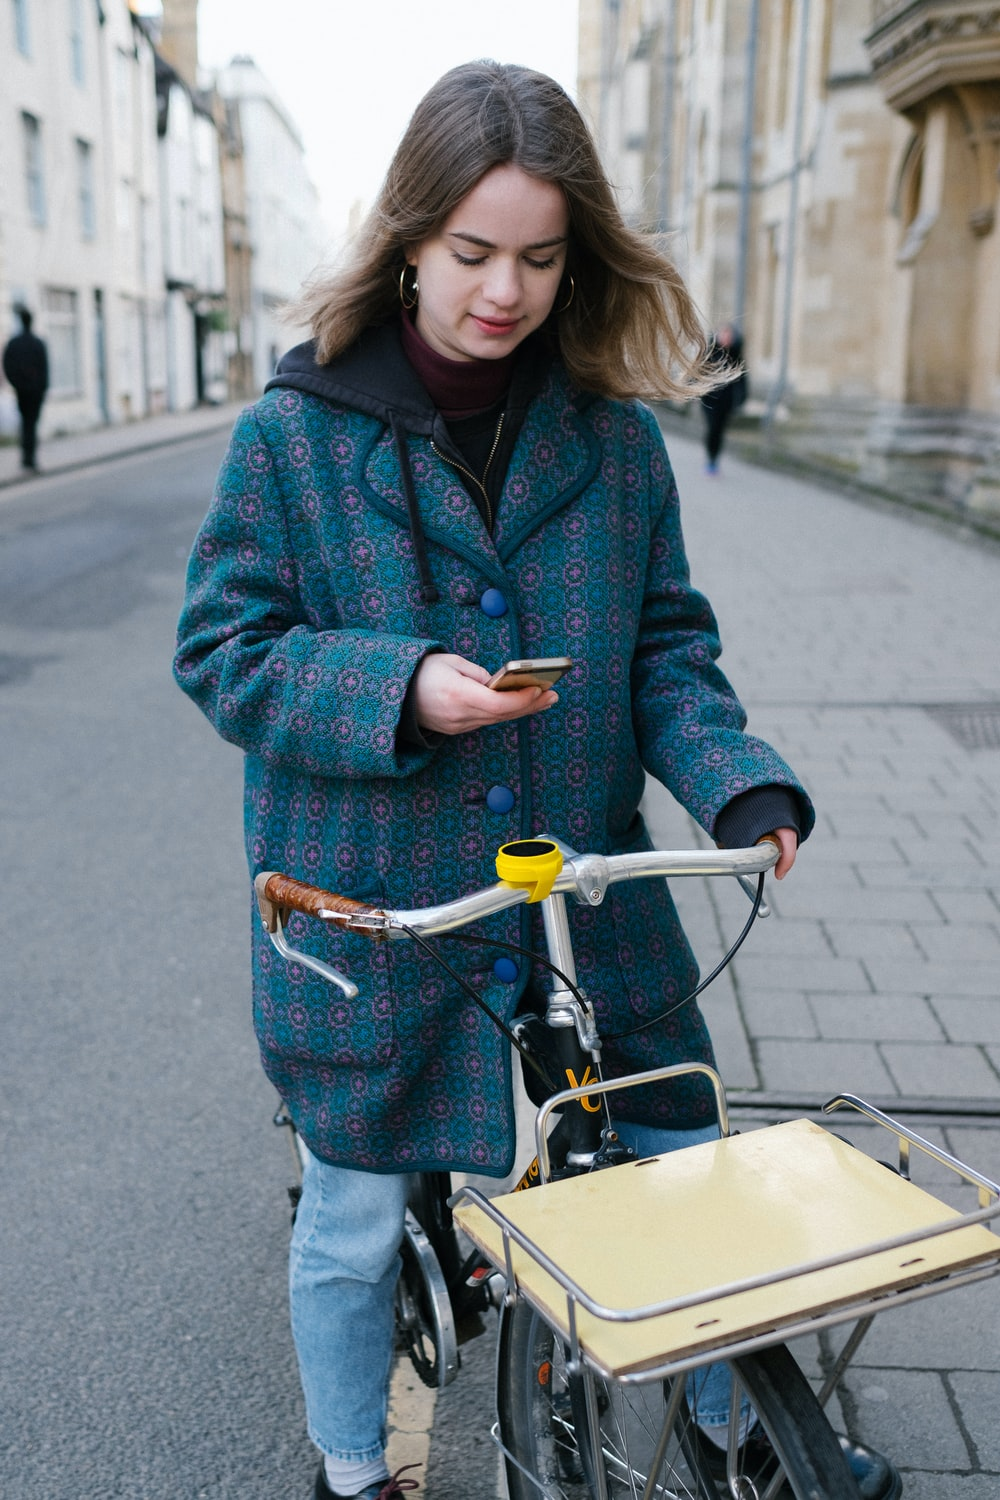 woman in red and black checkered coat and blue denim jeans holding yellow and black bicycle